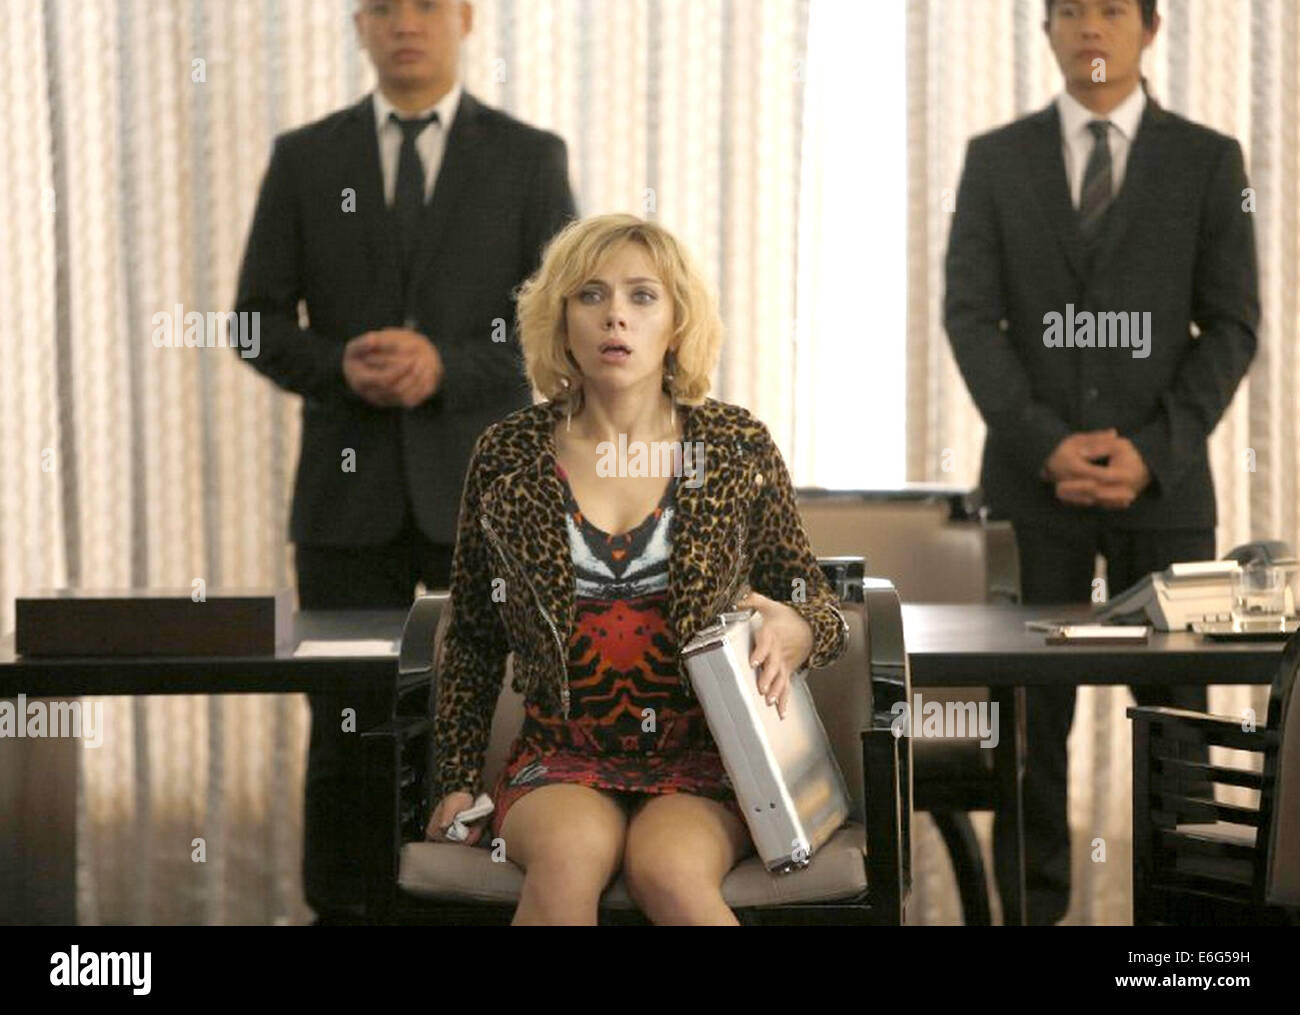 LUCY 2014 Canal+ film with Scarlett Johansson - Stock Image